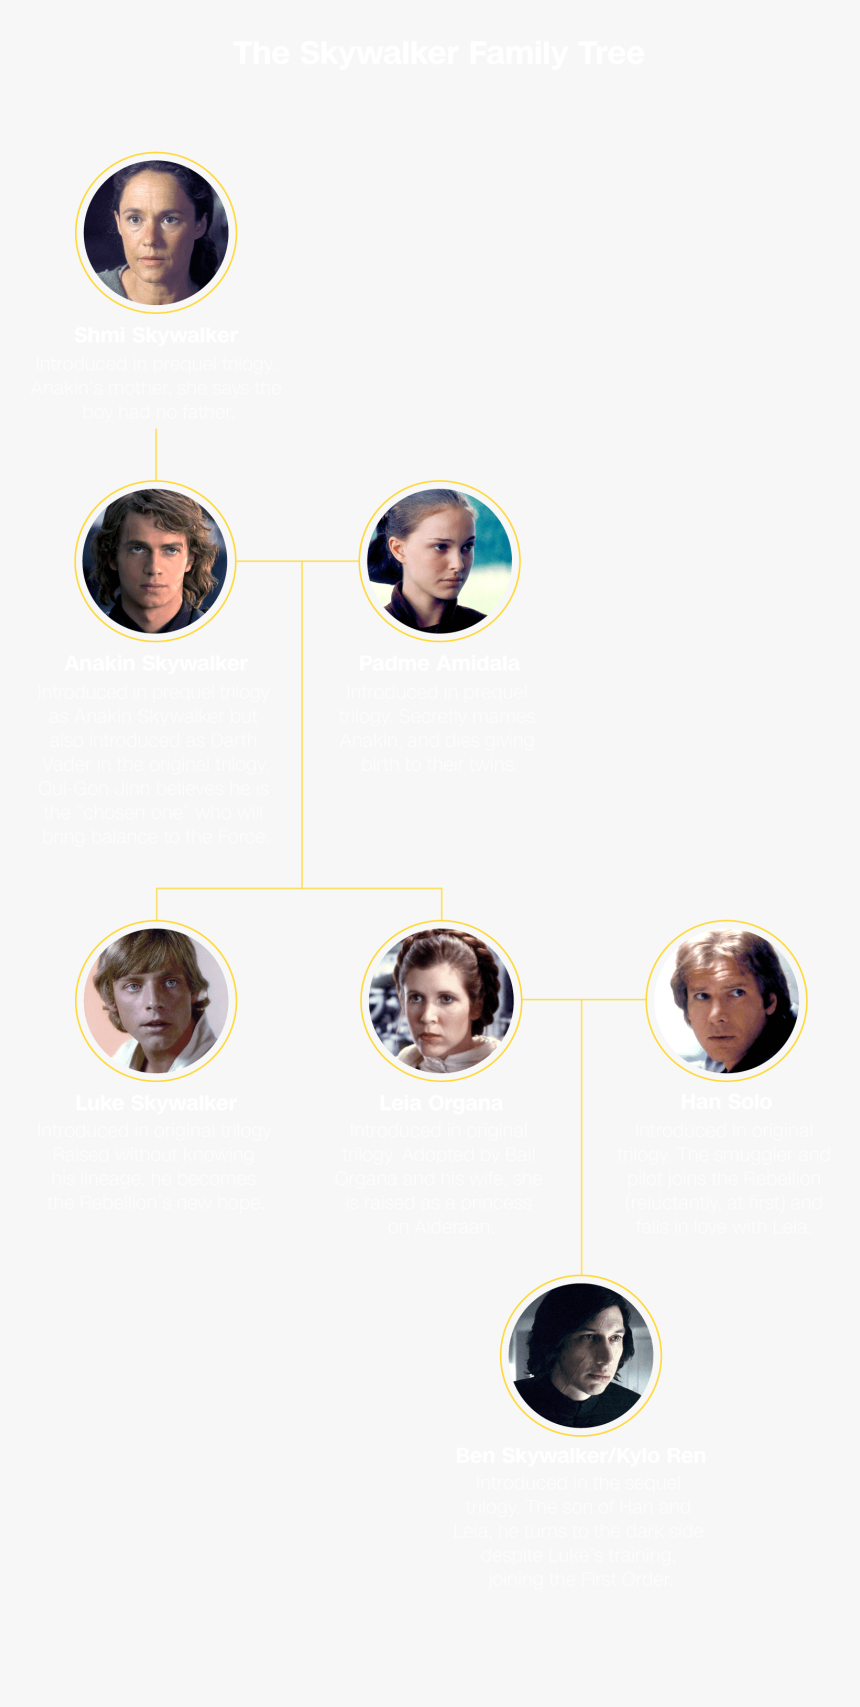 Rise Of The Skywalker Hero Image - Star Wars Family Tree Rise Of Skywalker, HD Png Download, Free Download